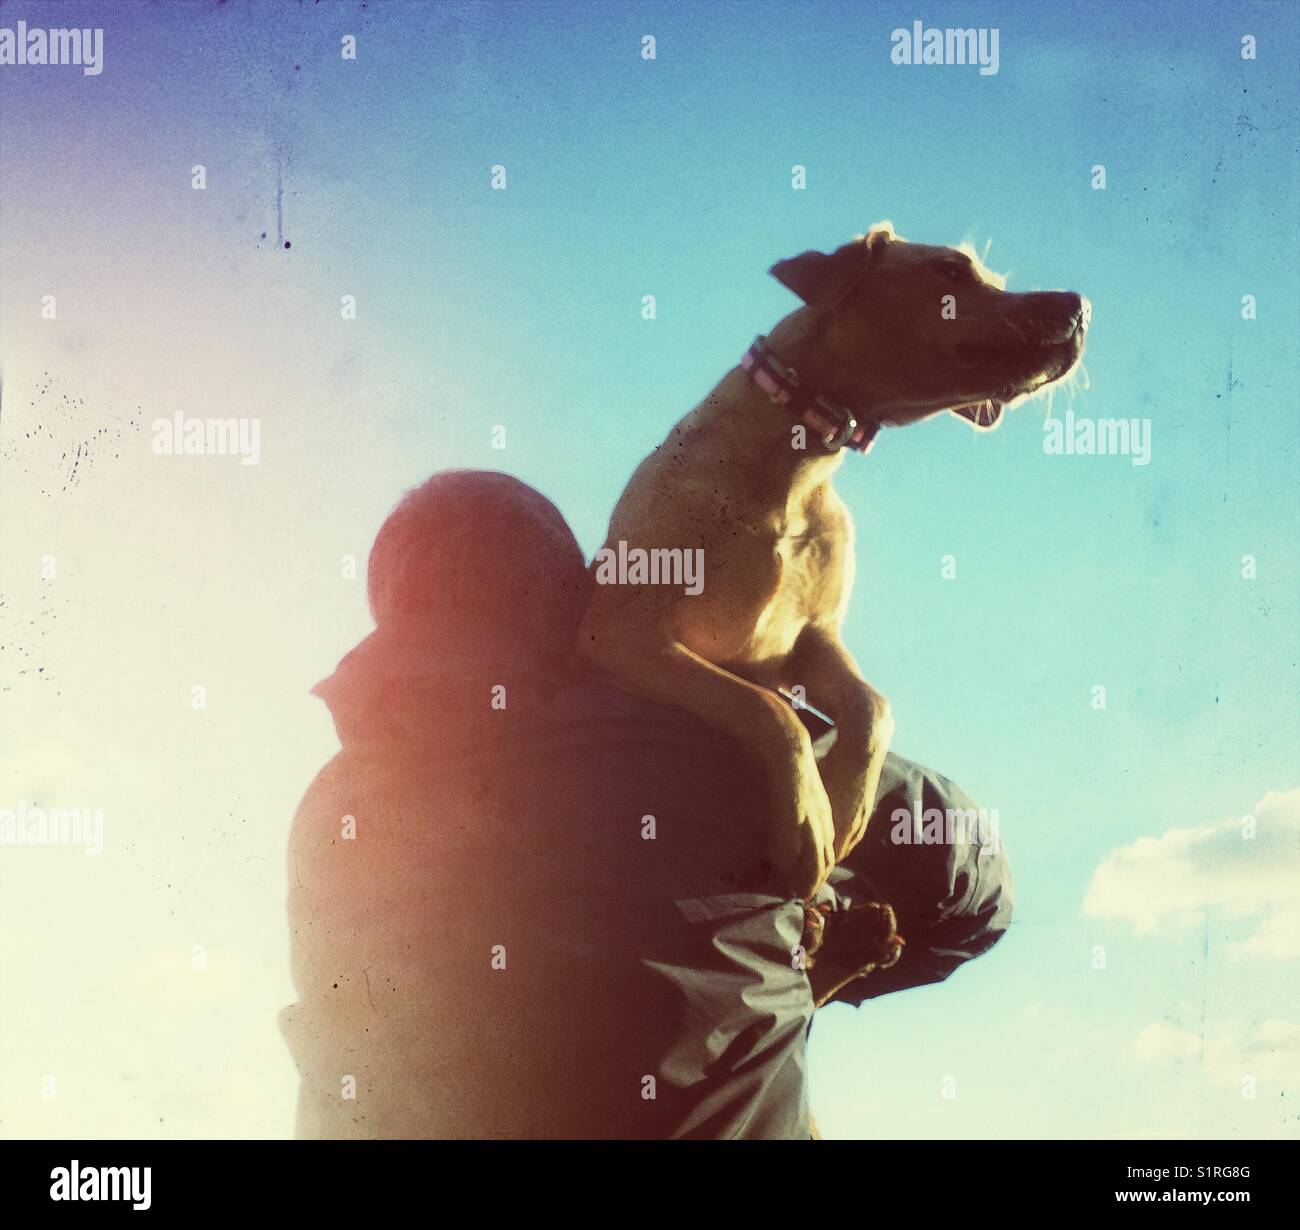 A strong man carrying his injured dog home and onto the sunset - Stock Image